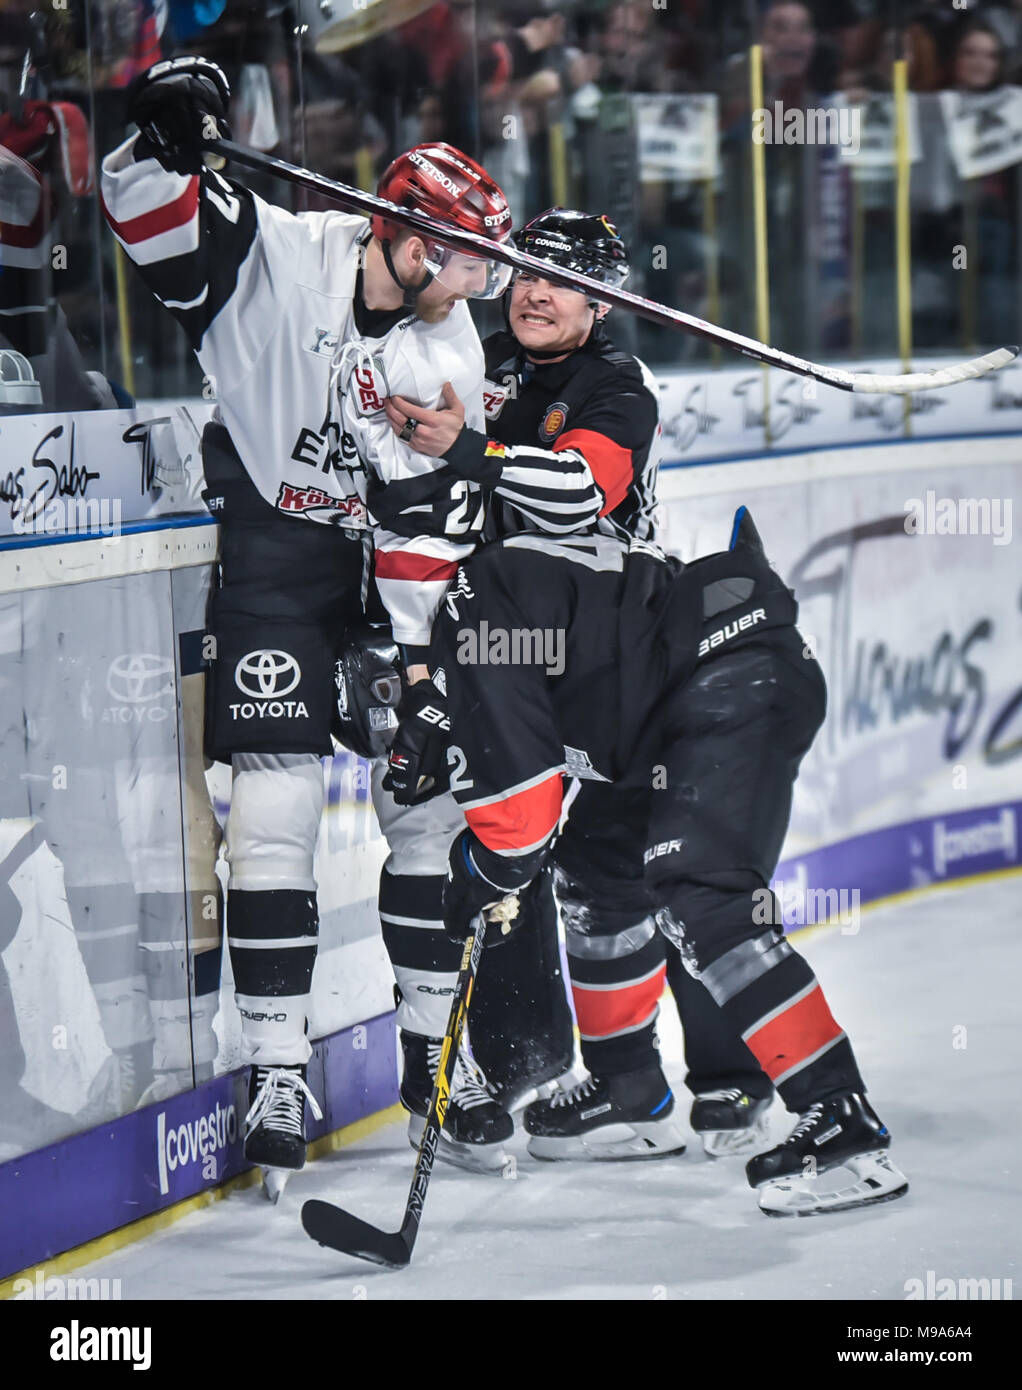 Germany, NŸrnberg, Arena NŸrnberger Versicherung, 23.03.2018, Eishockey - DEL Playoffs Viertelfinale, Spiel 5 - Thomas Sabo Ice Tigers vs. Kšlner Haie - Image: (From L-R)  Pascal Zerressen (Kšlner Haie, #27) and Yasin Ehliz (Ice Tigers, #42) getting off-setting penalties for roughing after the whistle.   Foto: HMB Media/Ryan Credit: Ryan Evans/Alamy Live News - Stock Image